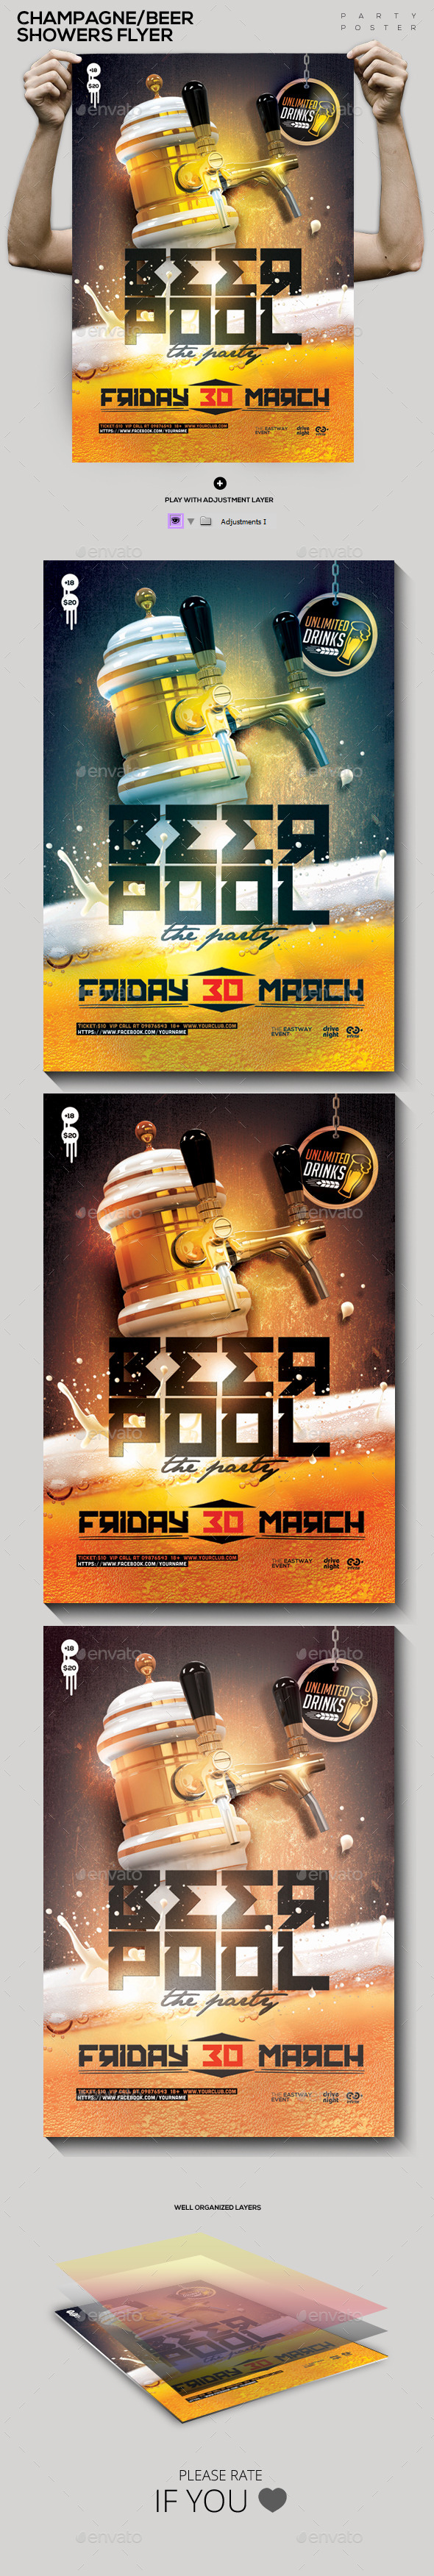 GraphicRiver Beer Champagne Pool Showers Flyer Flyer Poster 10547797